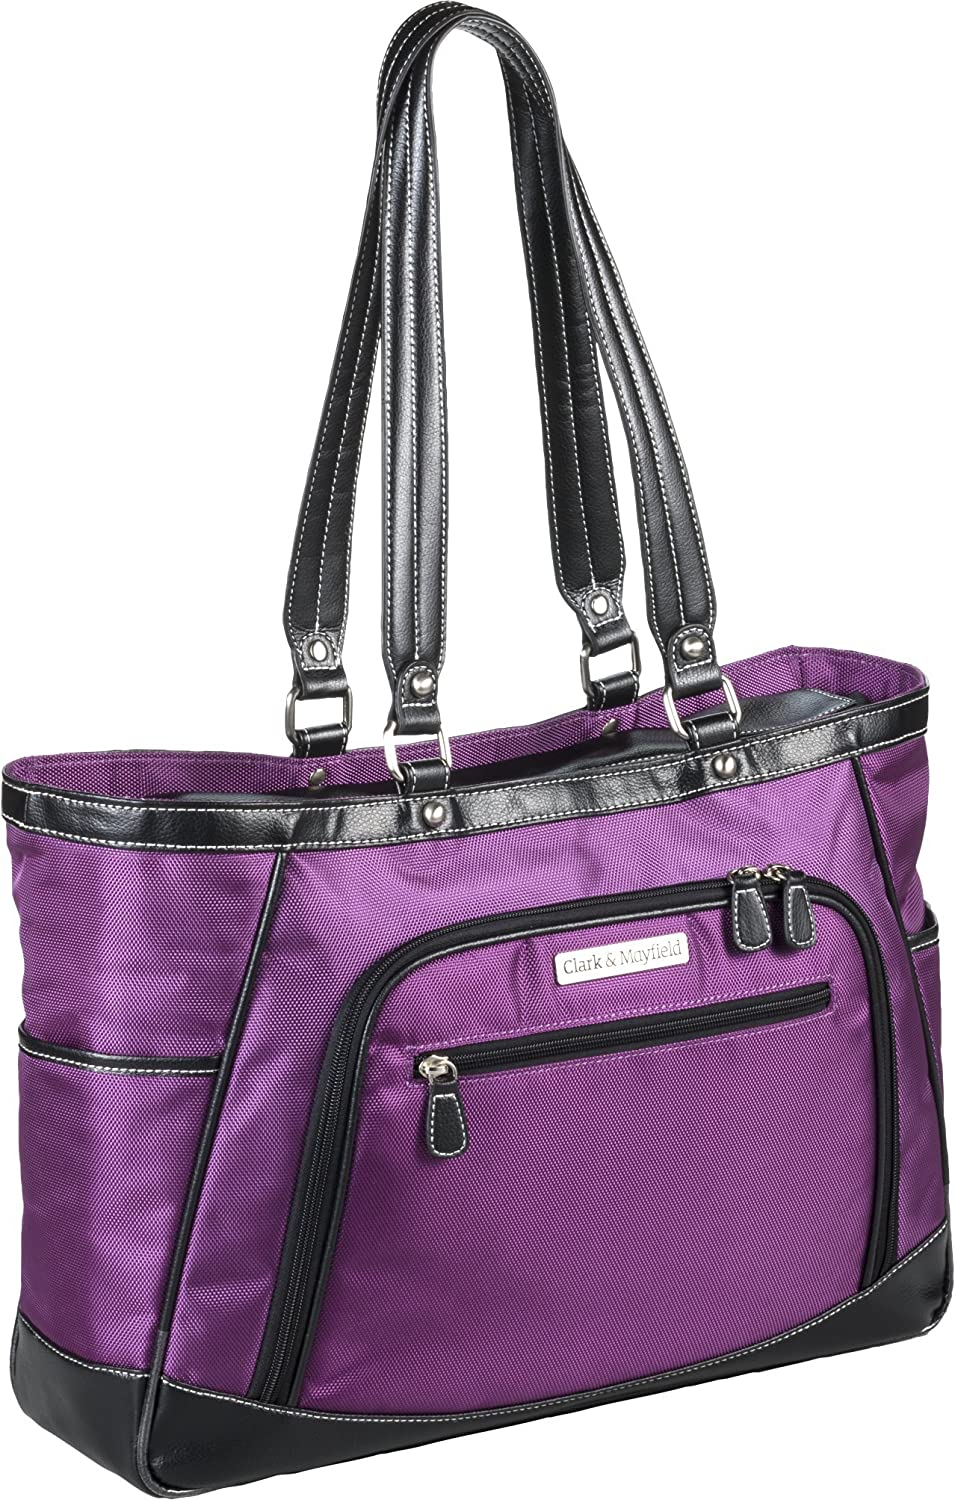 "Amazon.com: Clark & Mayfield Sellwood Metro XL 17.3"" Laptop Tote Purple:  Computers & Accessories"